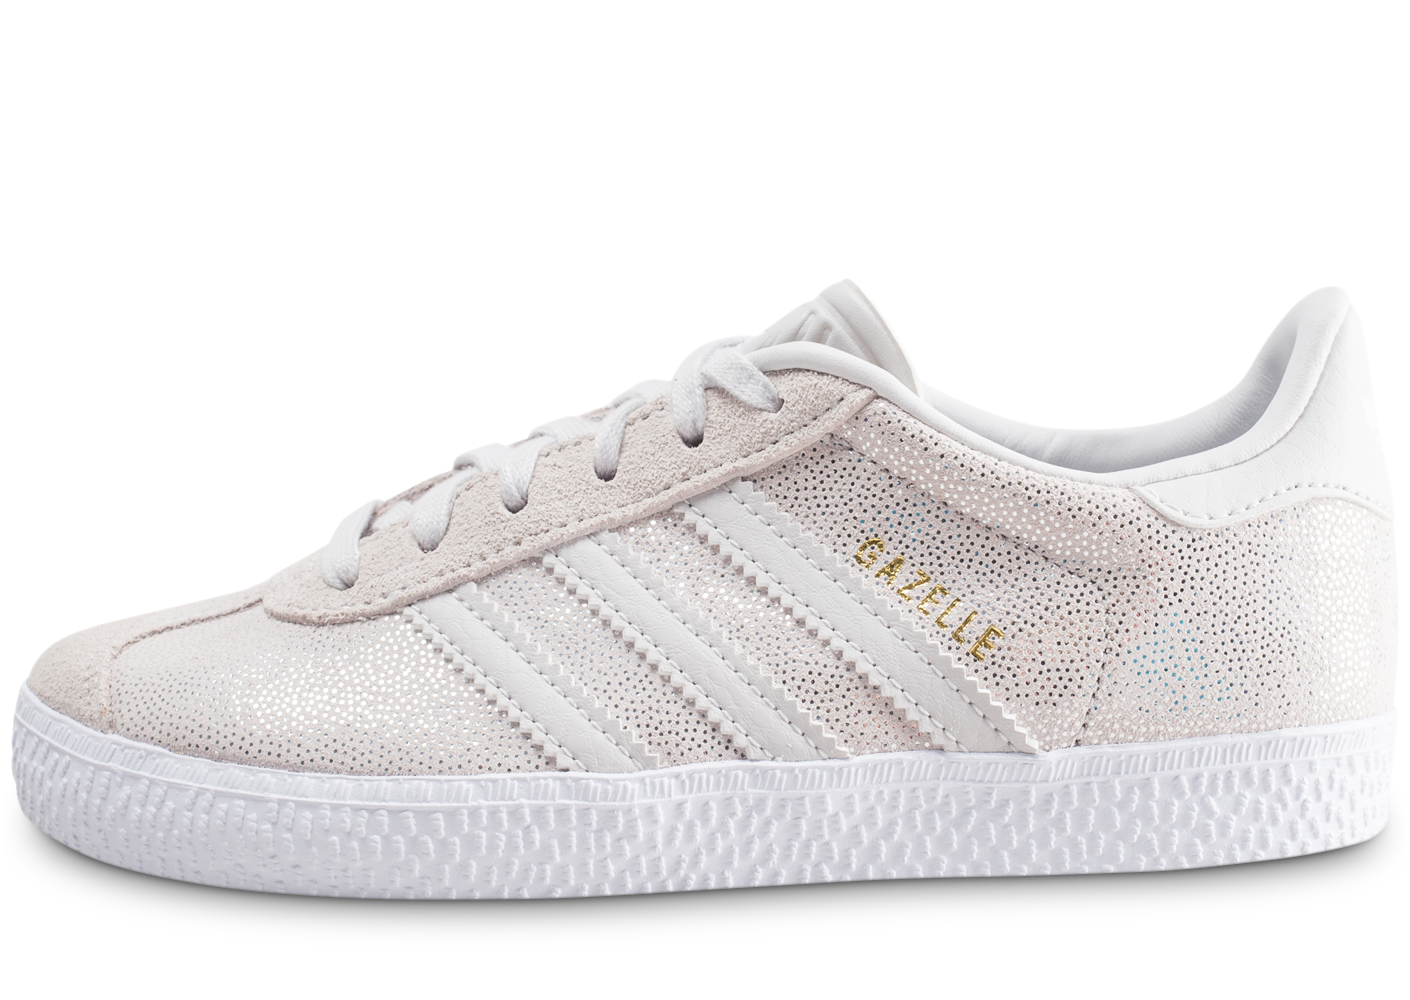 official images promo codes outlet store sale Chaussure Adidas|Asics